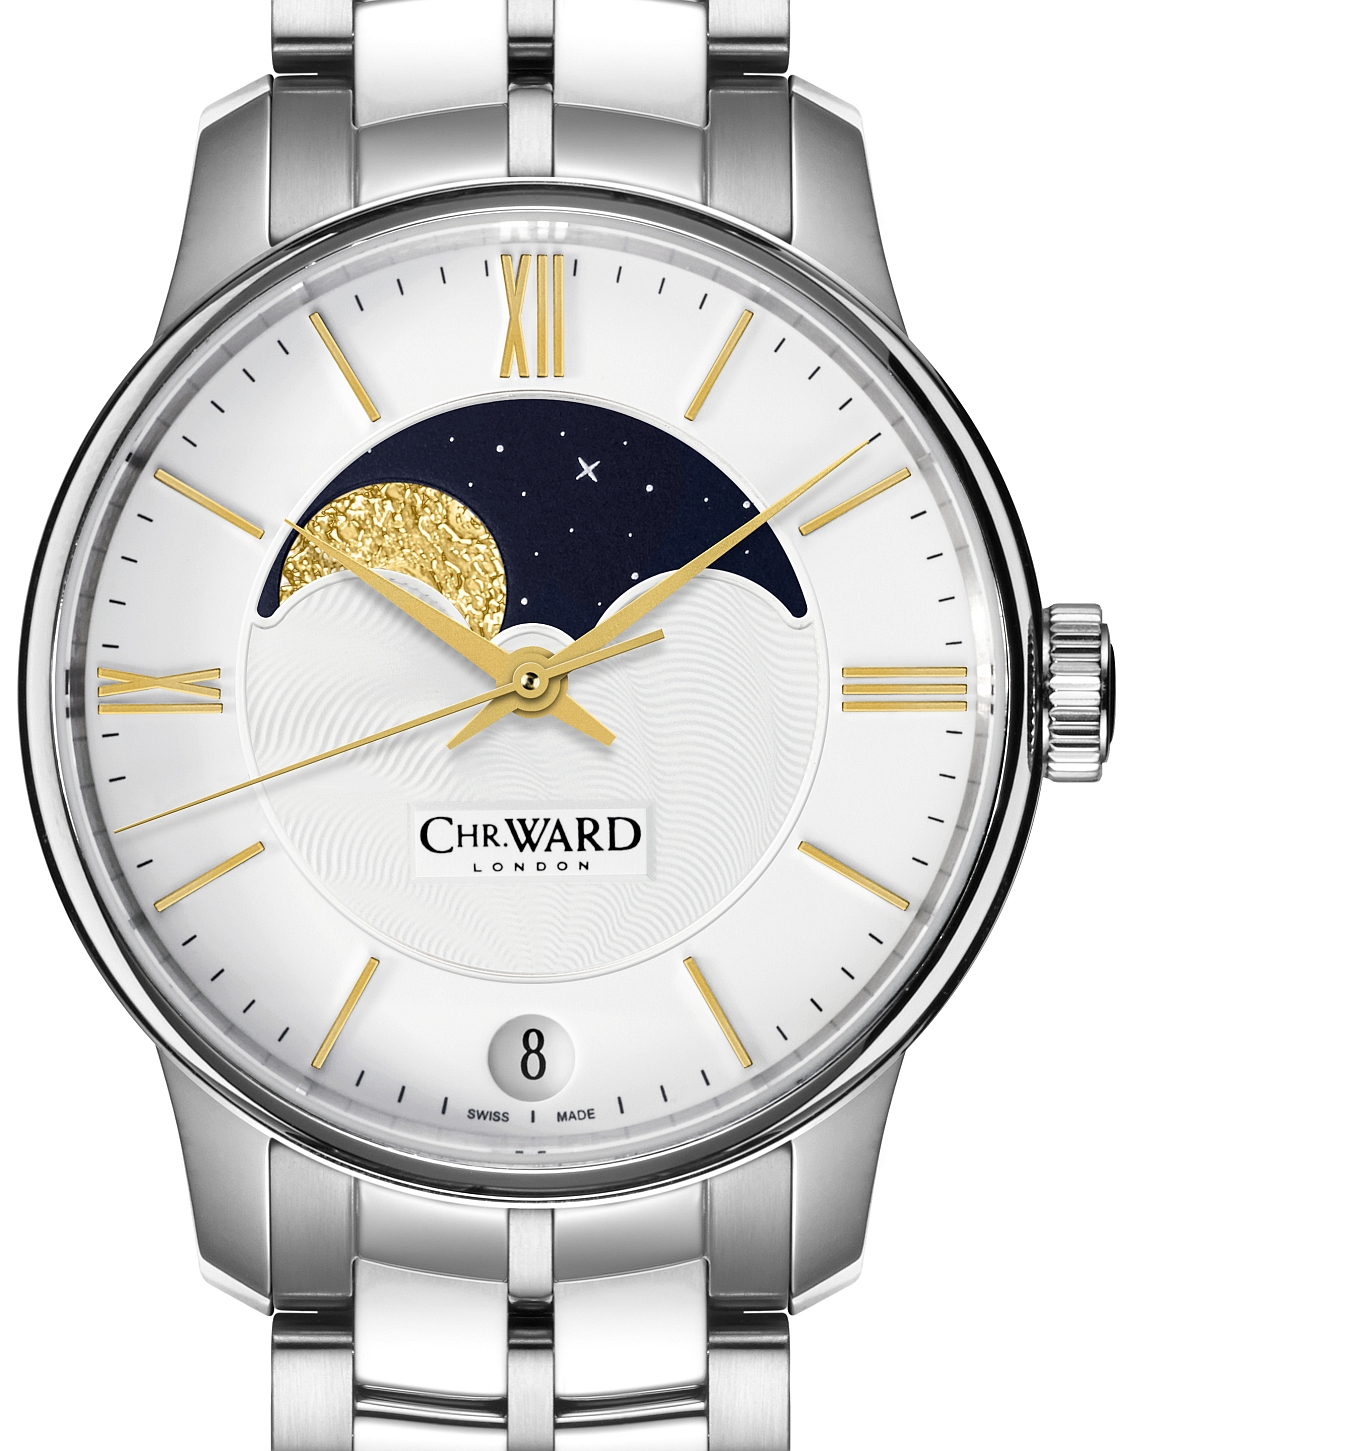 Christopher Ward's C9 Moonphase Chr-christopher-ward-c9-moonphase-wristwatch-silver-dial-front